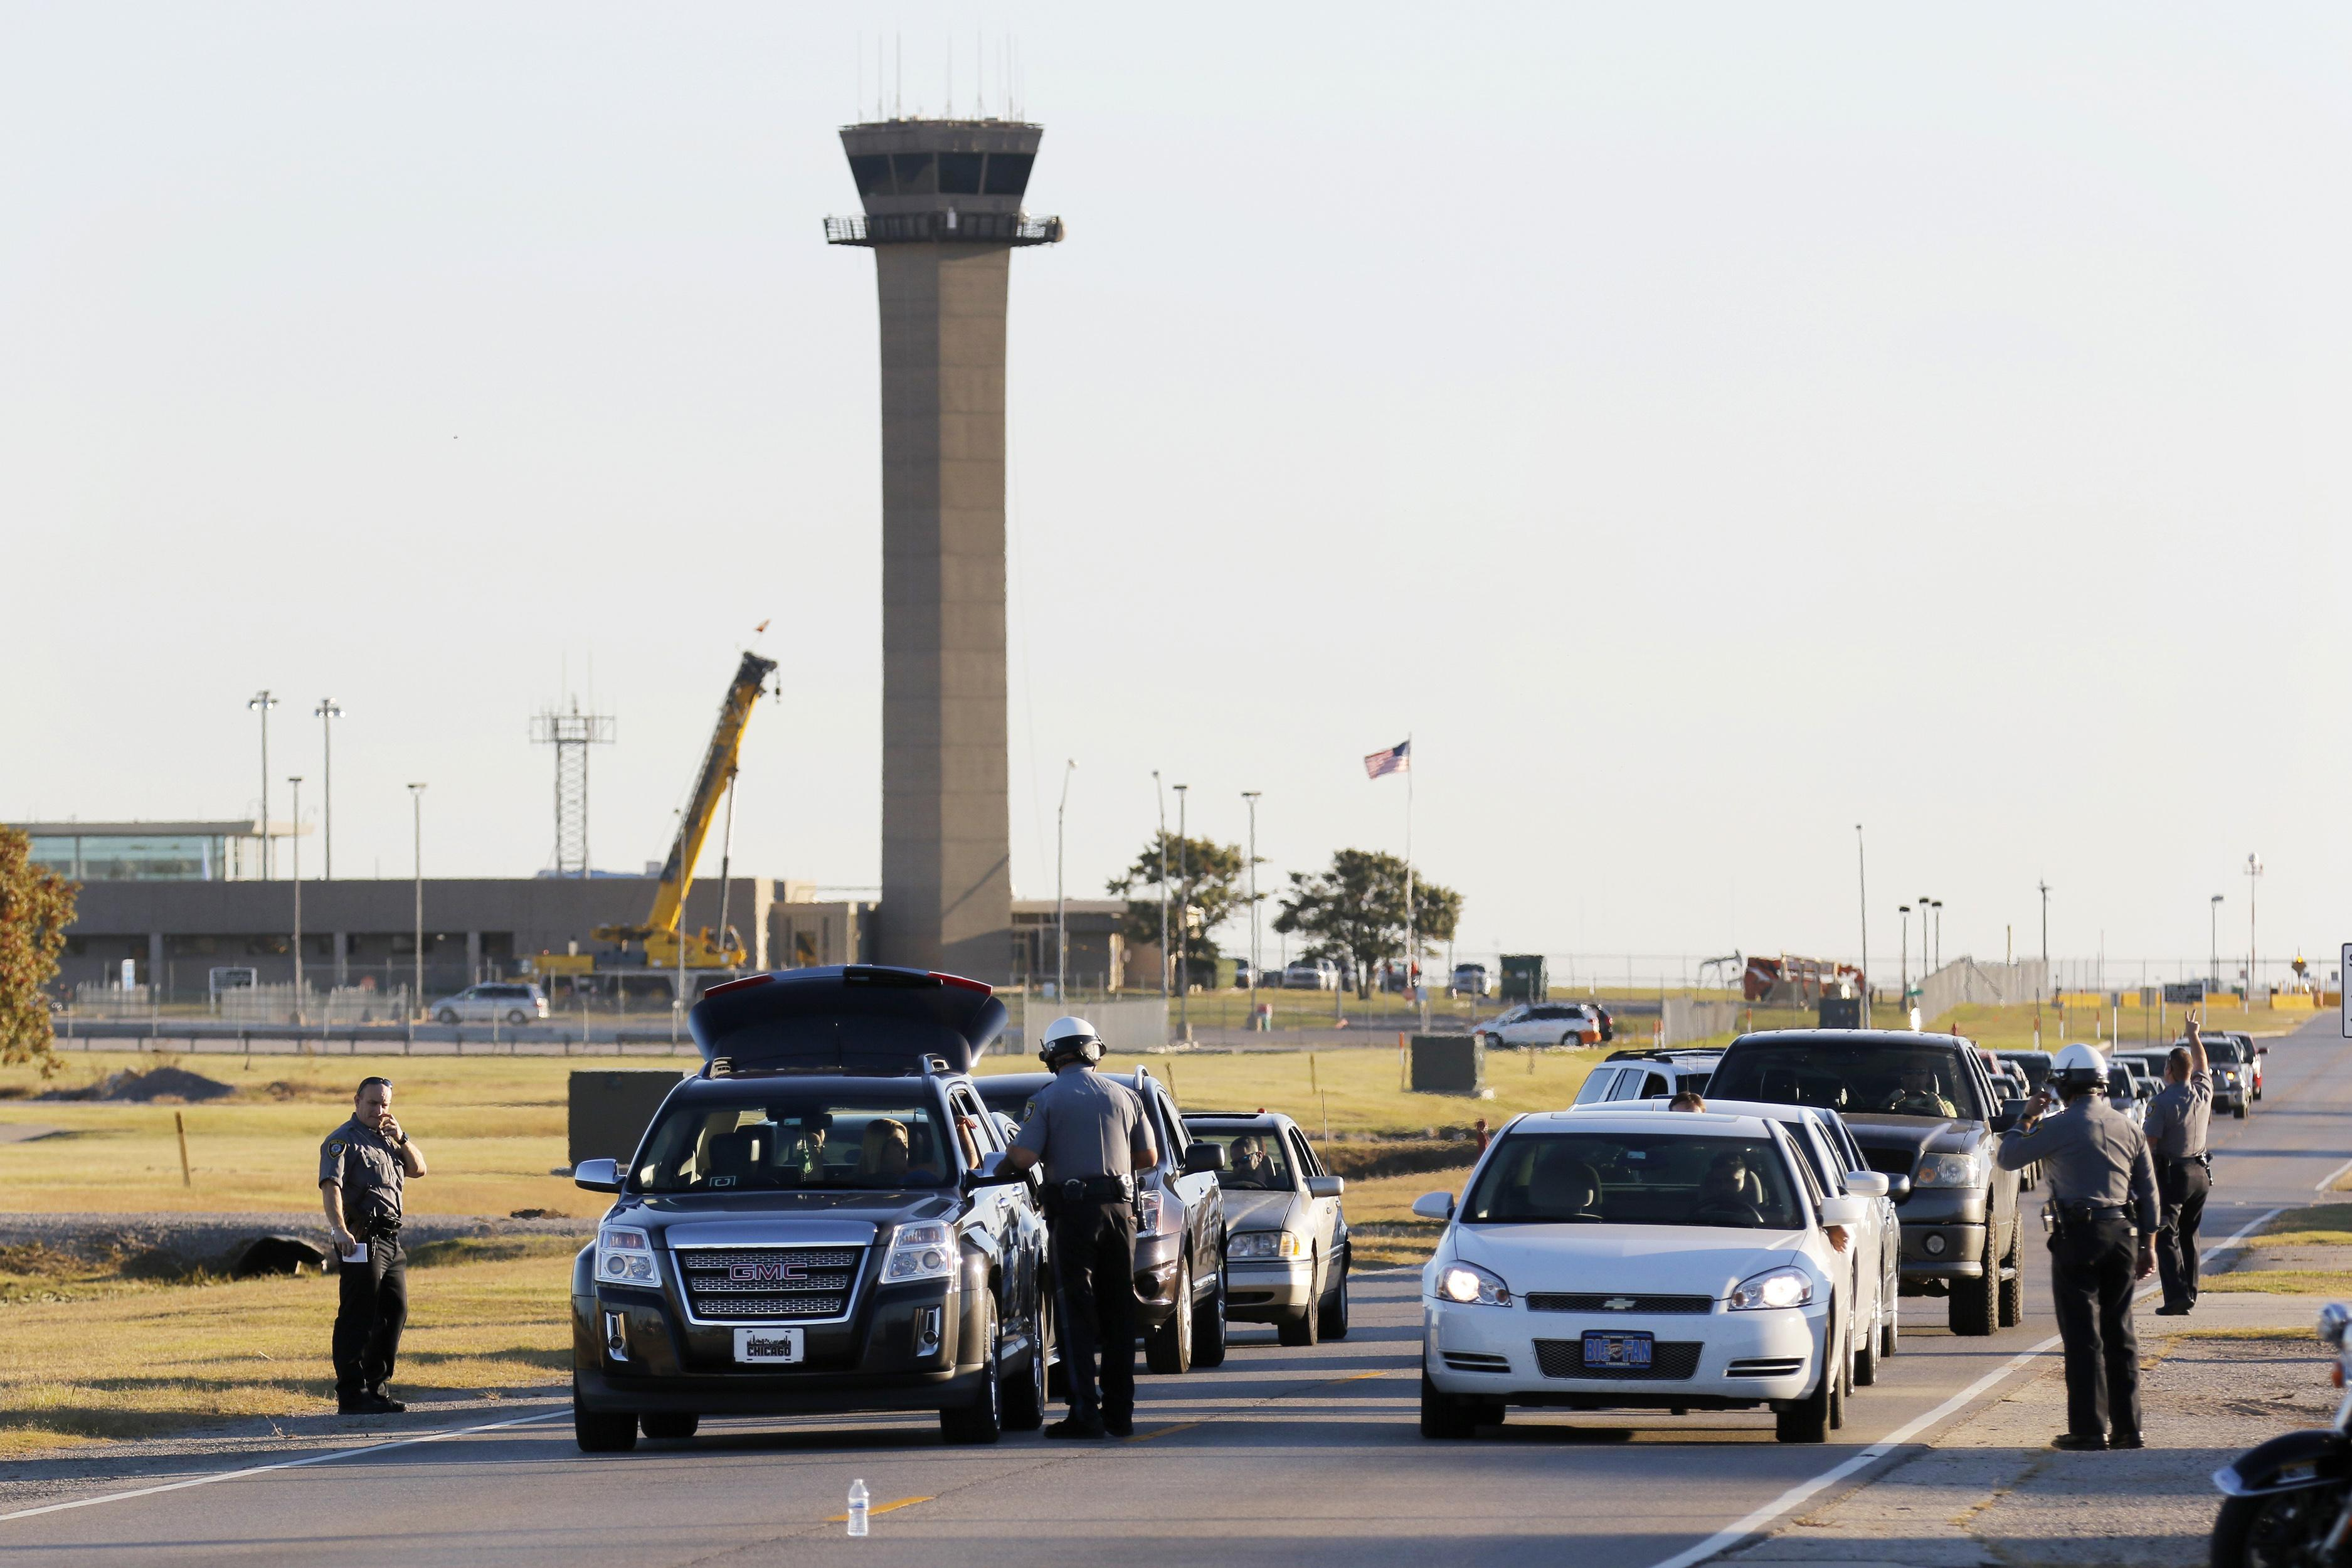 Airport_shooting-oklahoma_city